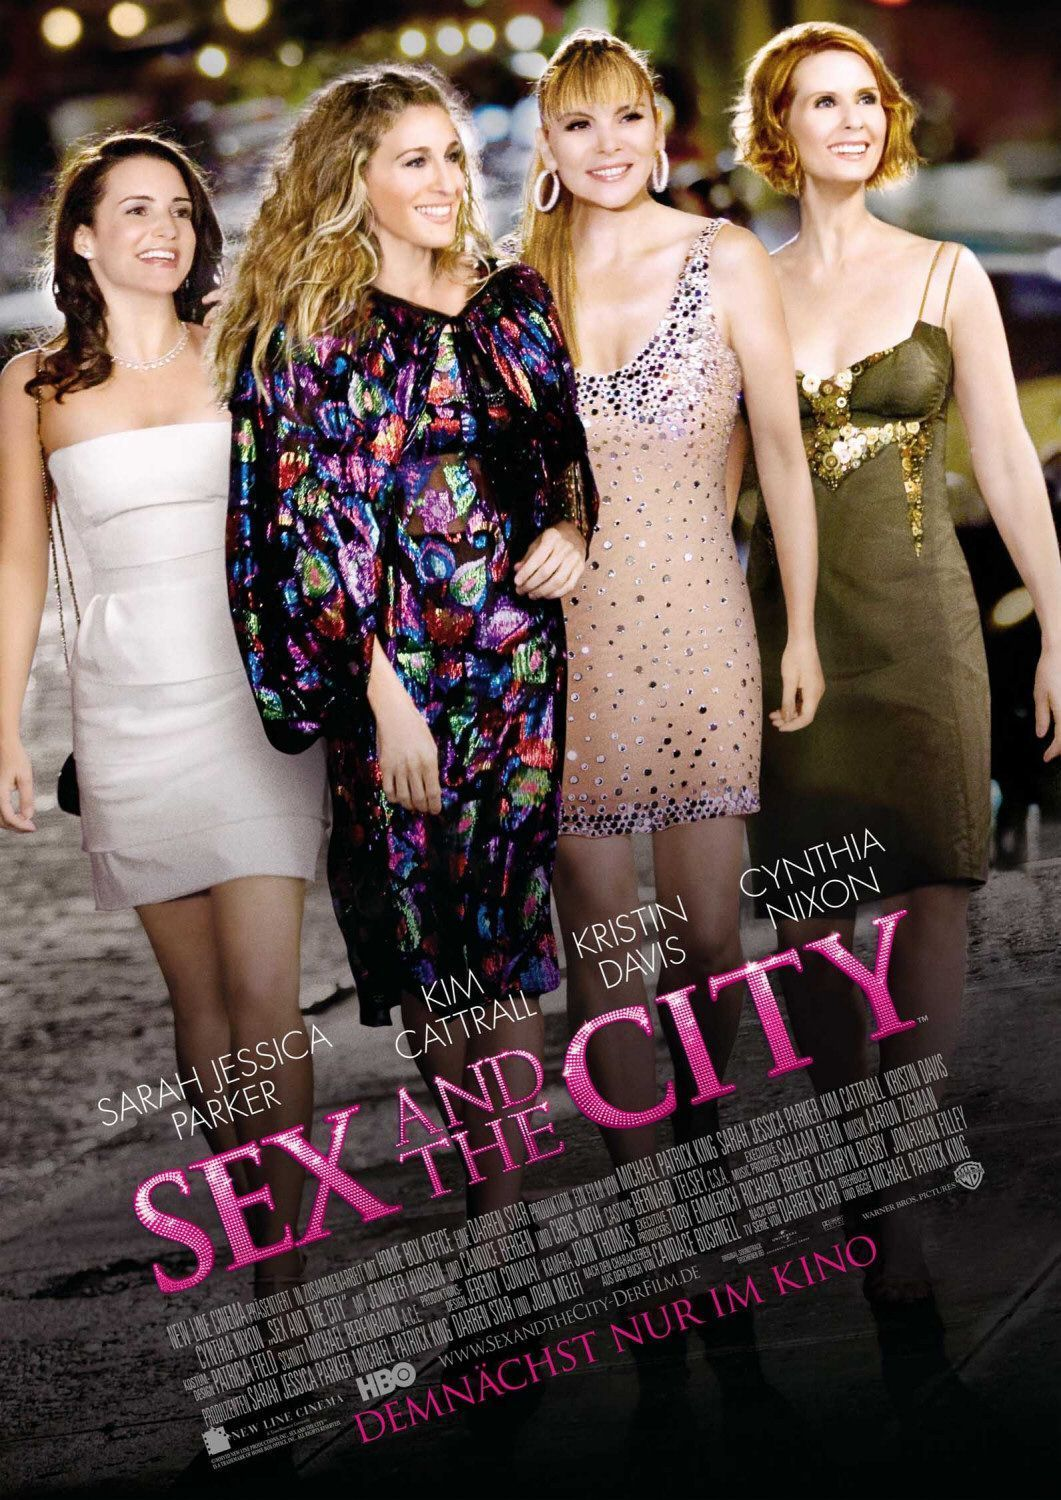 Sex scenes in sex and the city movie